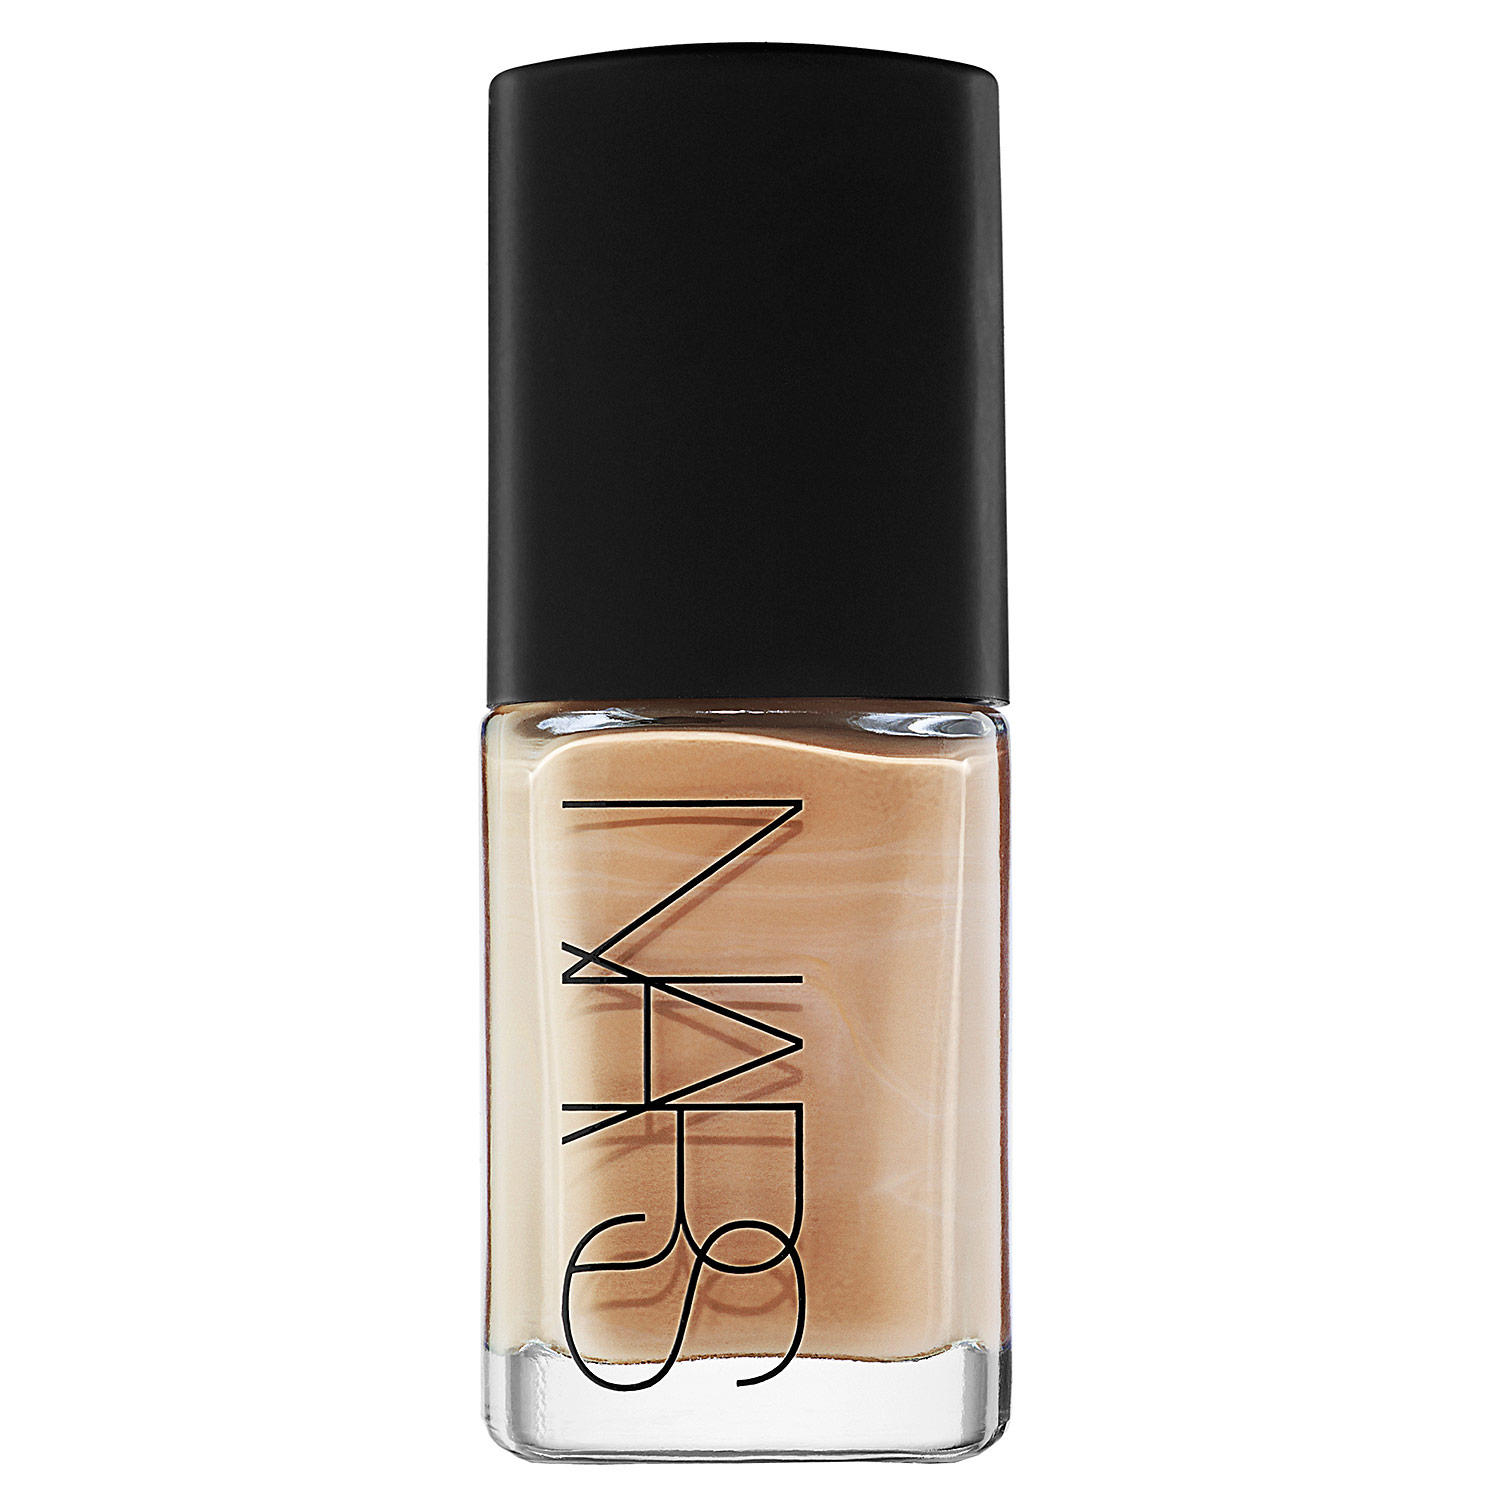 NARS Sheer Glow Foundation Tahoe Med/Dark2